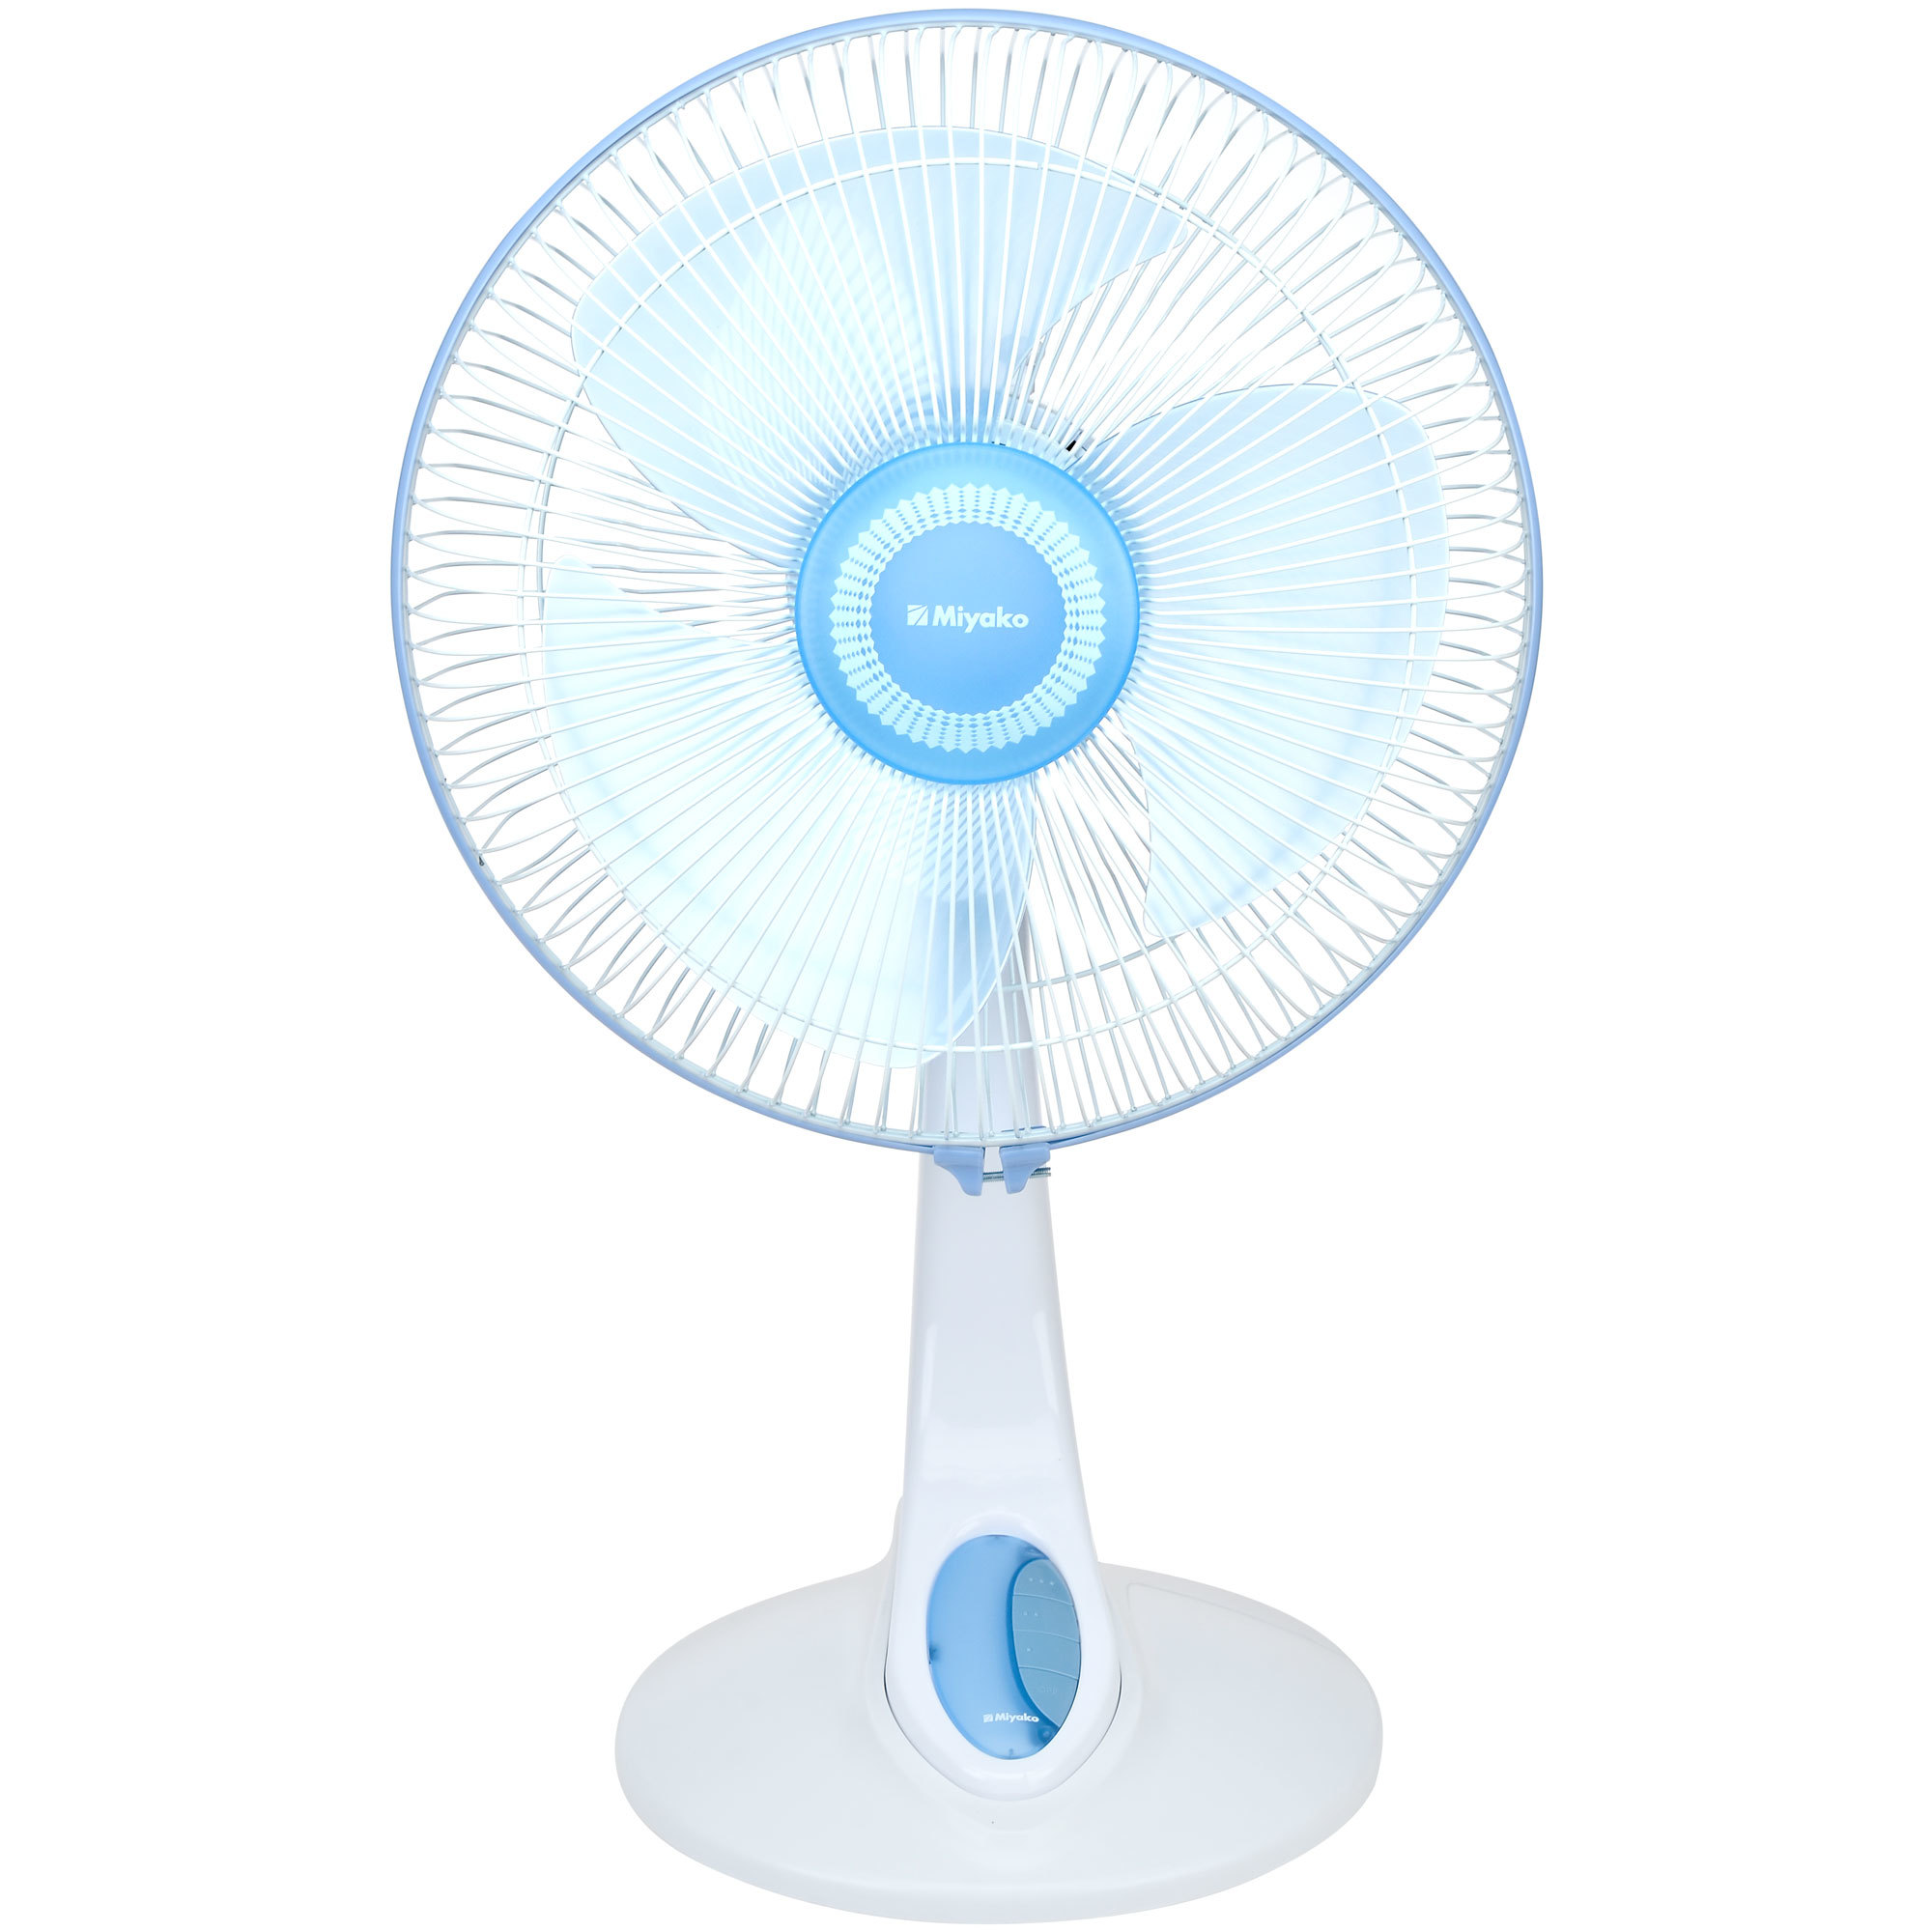 Miyako Kipas Angin 2 In 1 Desk Fan Kad 1227    Biru